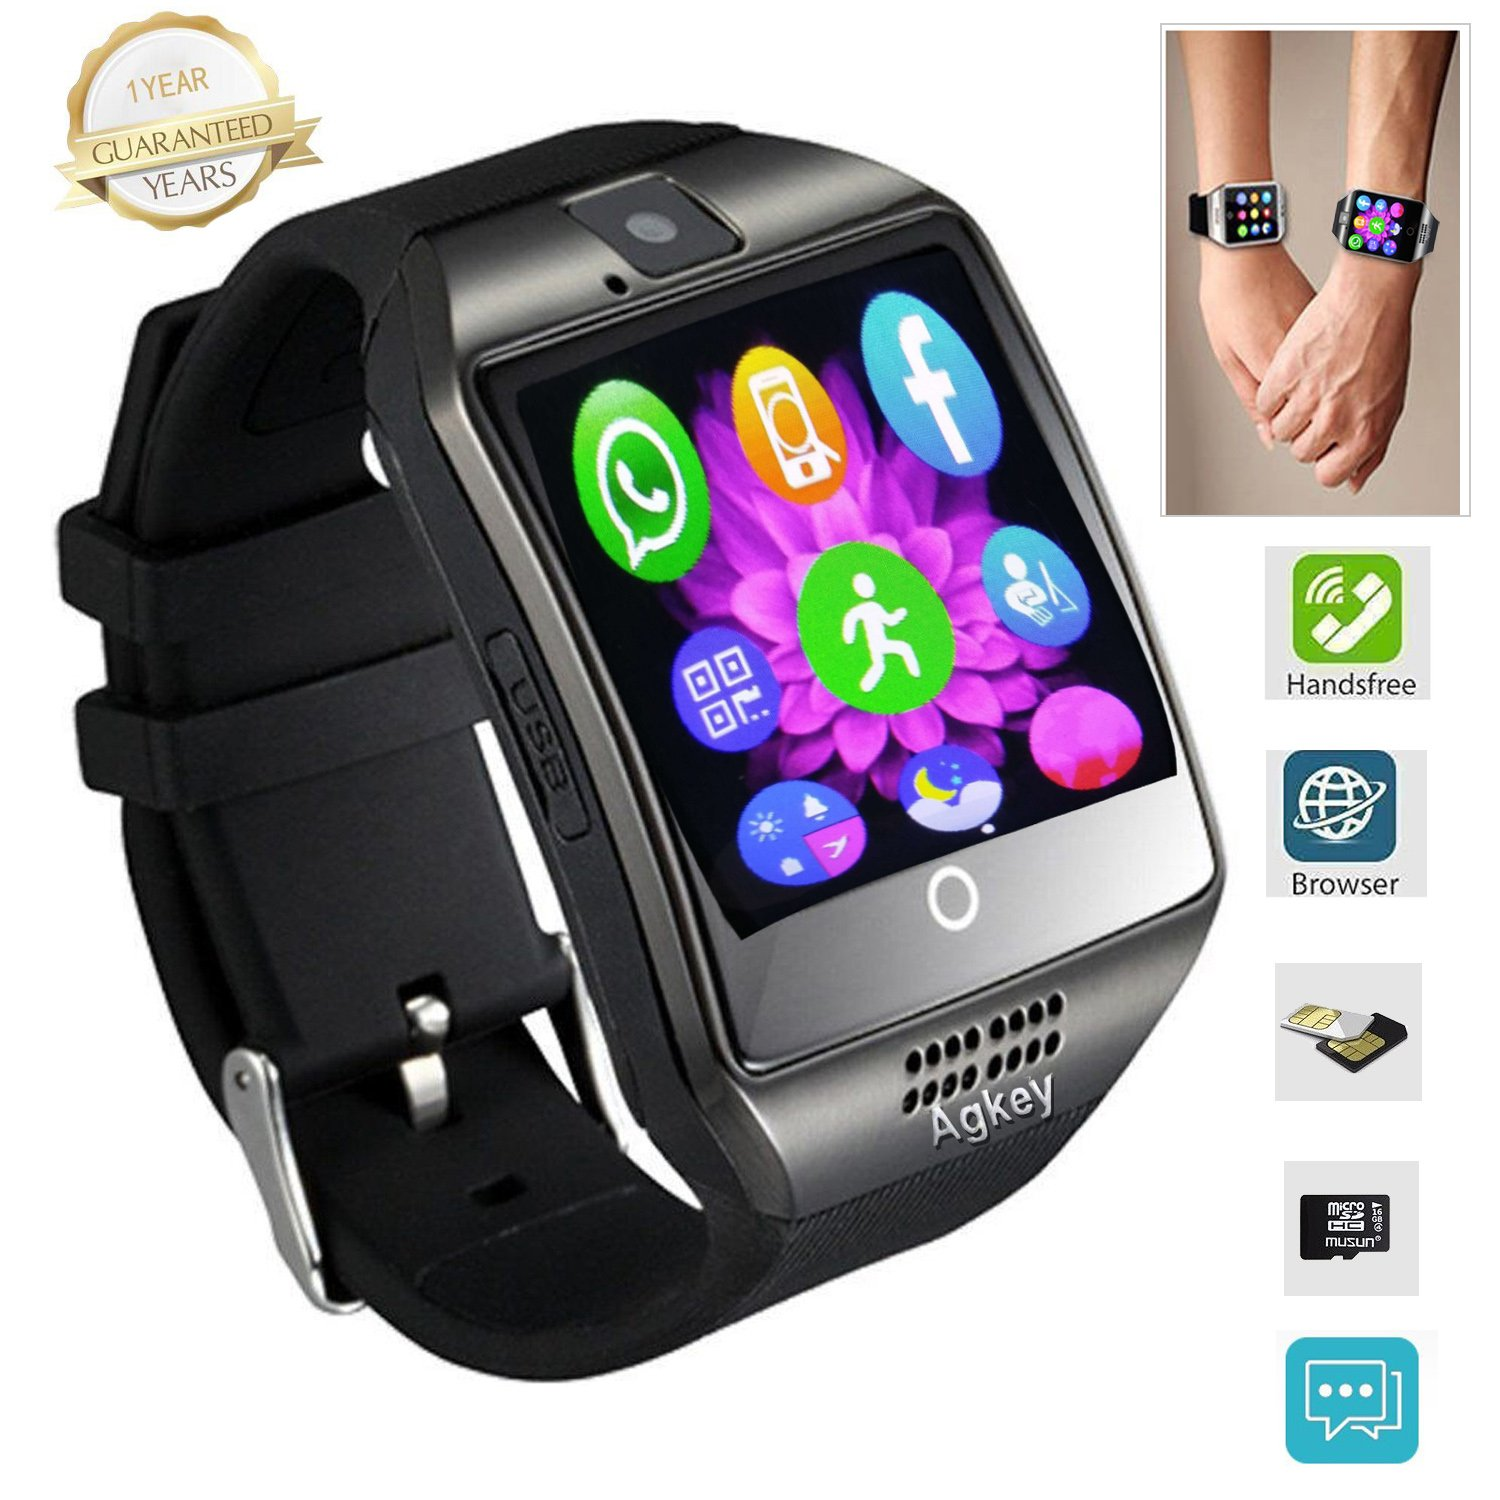 camera watch touch pin com for smart samsung os smartphone ios phone bluetooth watches amazon and screen phones wristwatch with cell android black